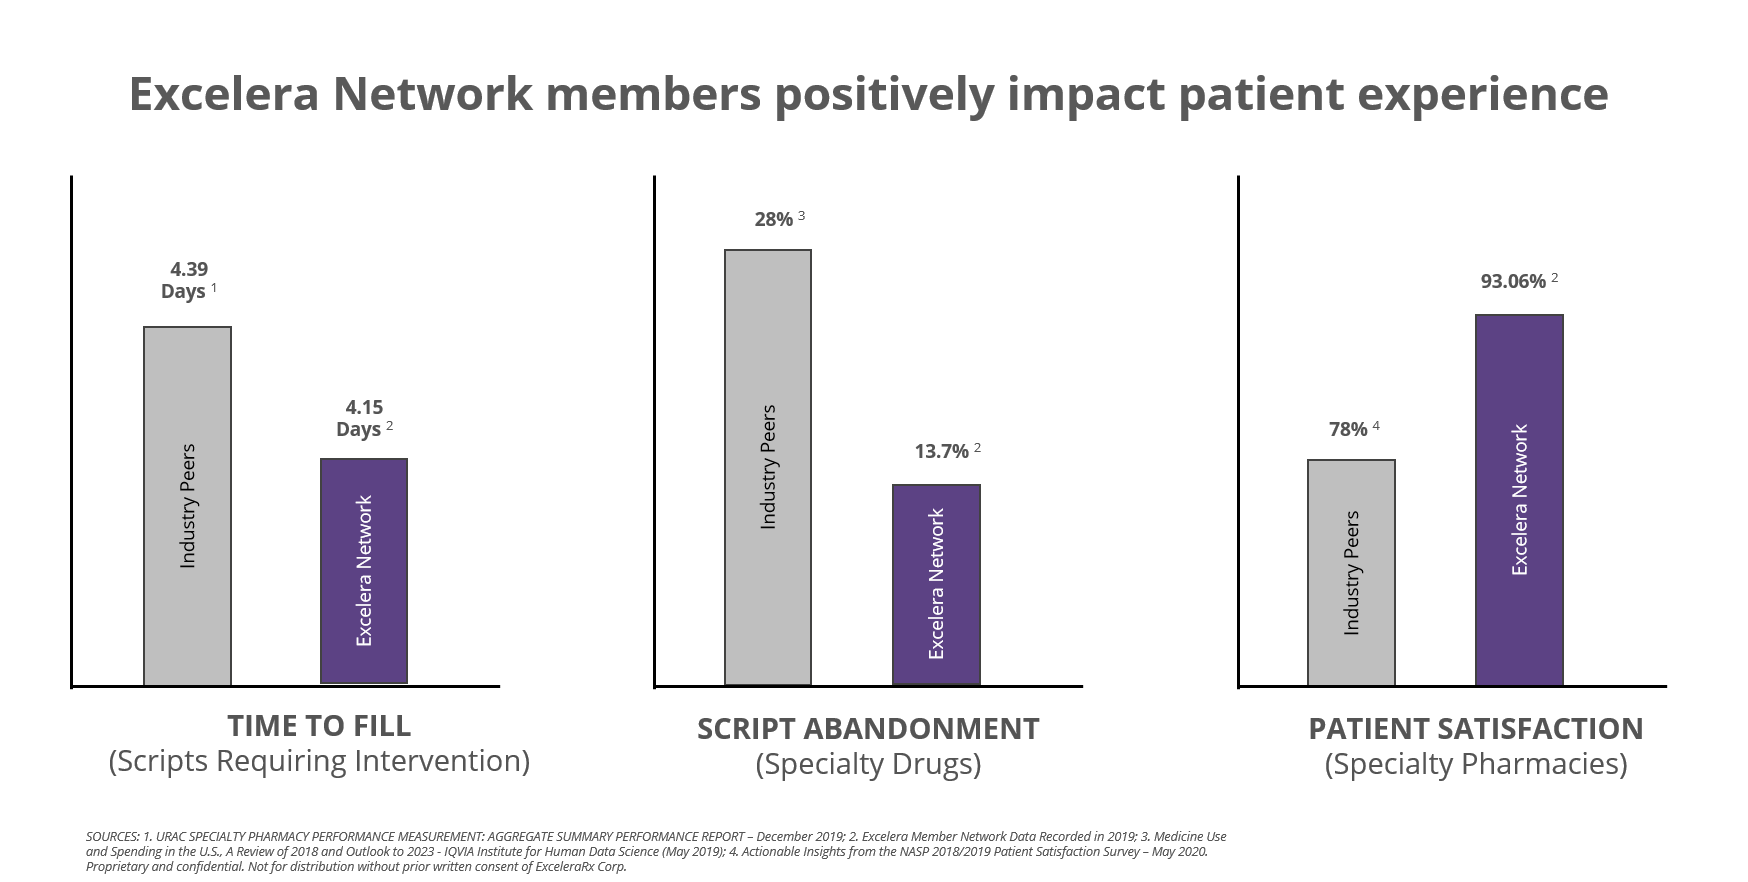 Excelera Network Positively Impact Patient Experience